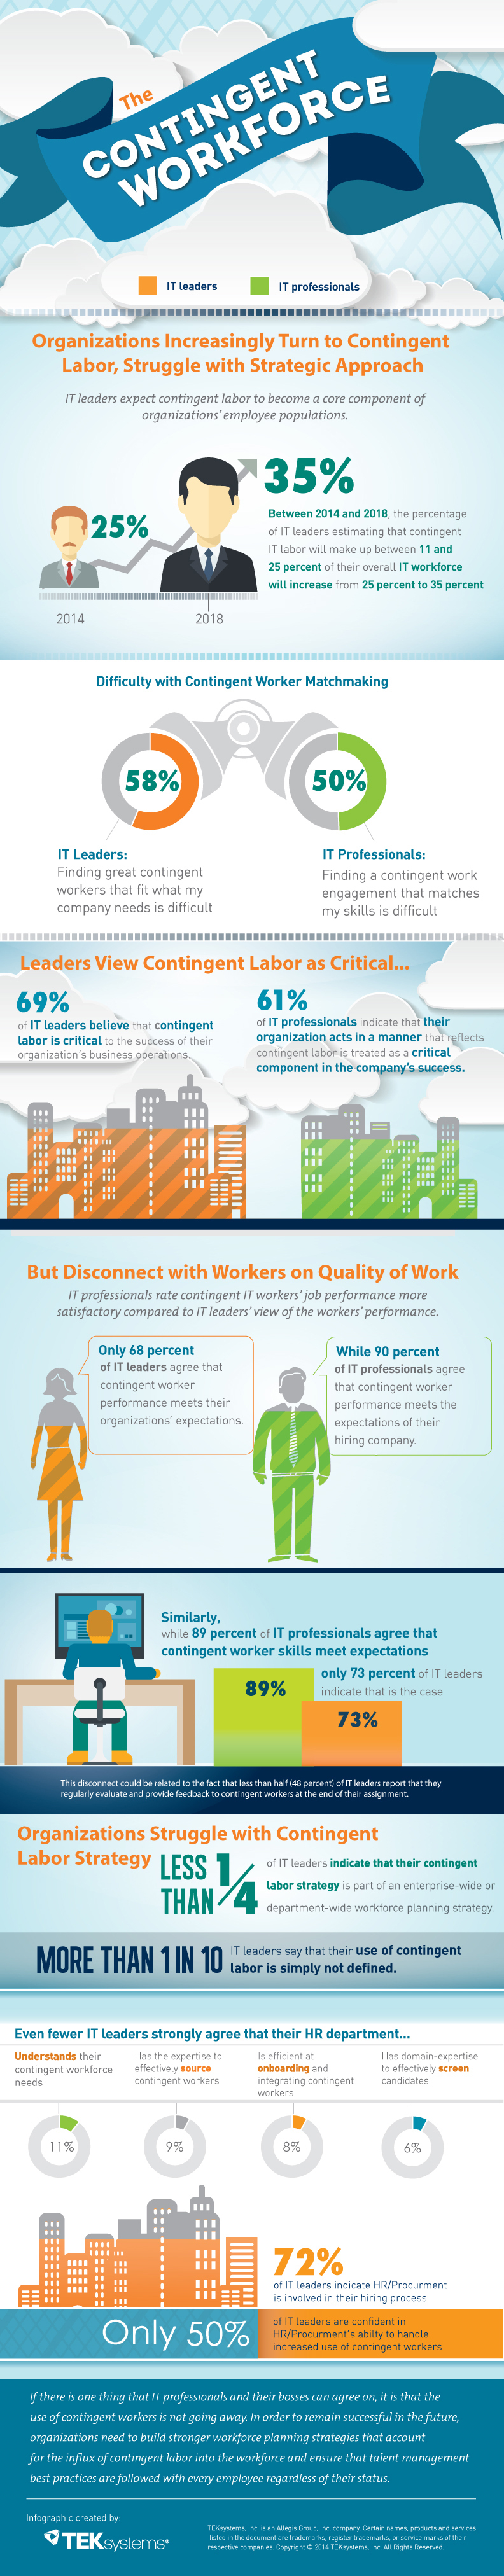 According to TEKsystems, IT leaders increasingly expect contingent labor to become a core component of organizations' employee populations. Between 2014 and 2018, the percentage of IT leaders estimating that contingent IT labor will make up between 11 and 25 percent of their overall IT workforce will increase from 25 percent to 35 percent. (Graphic: Business Wire)